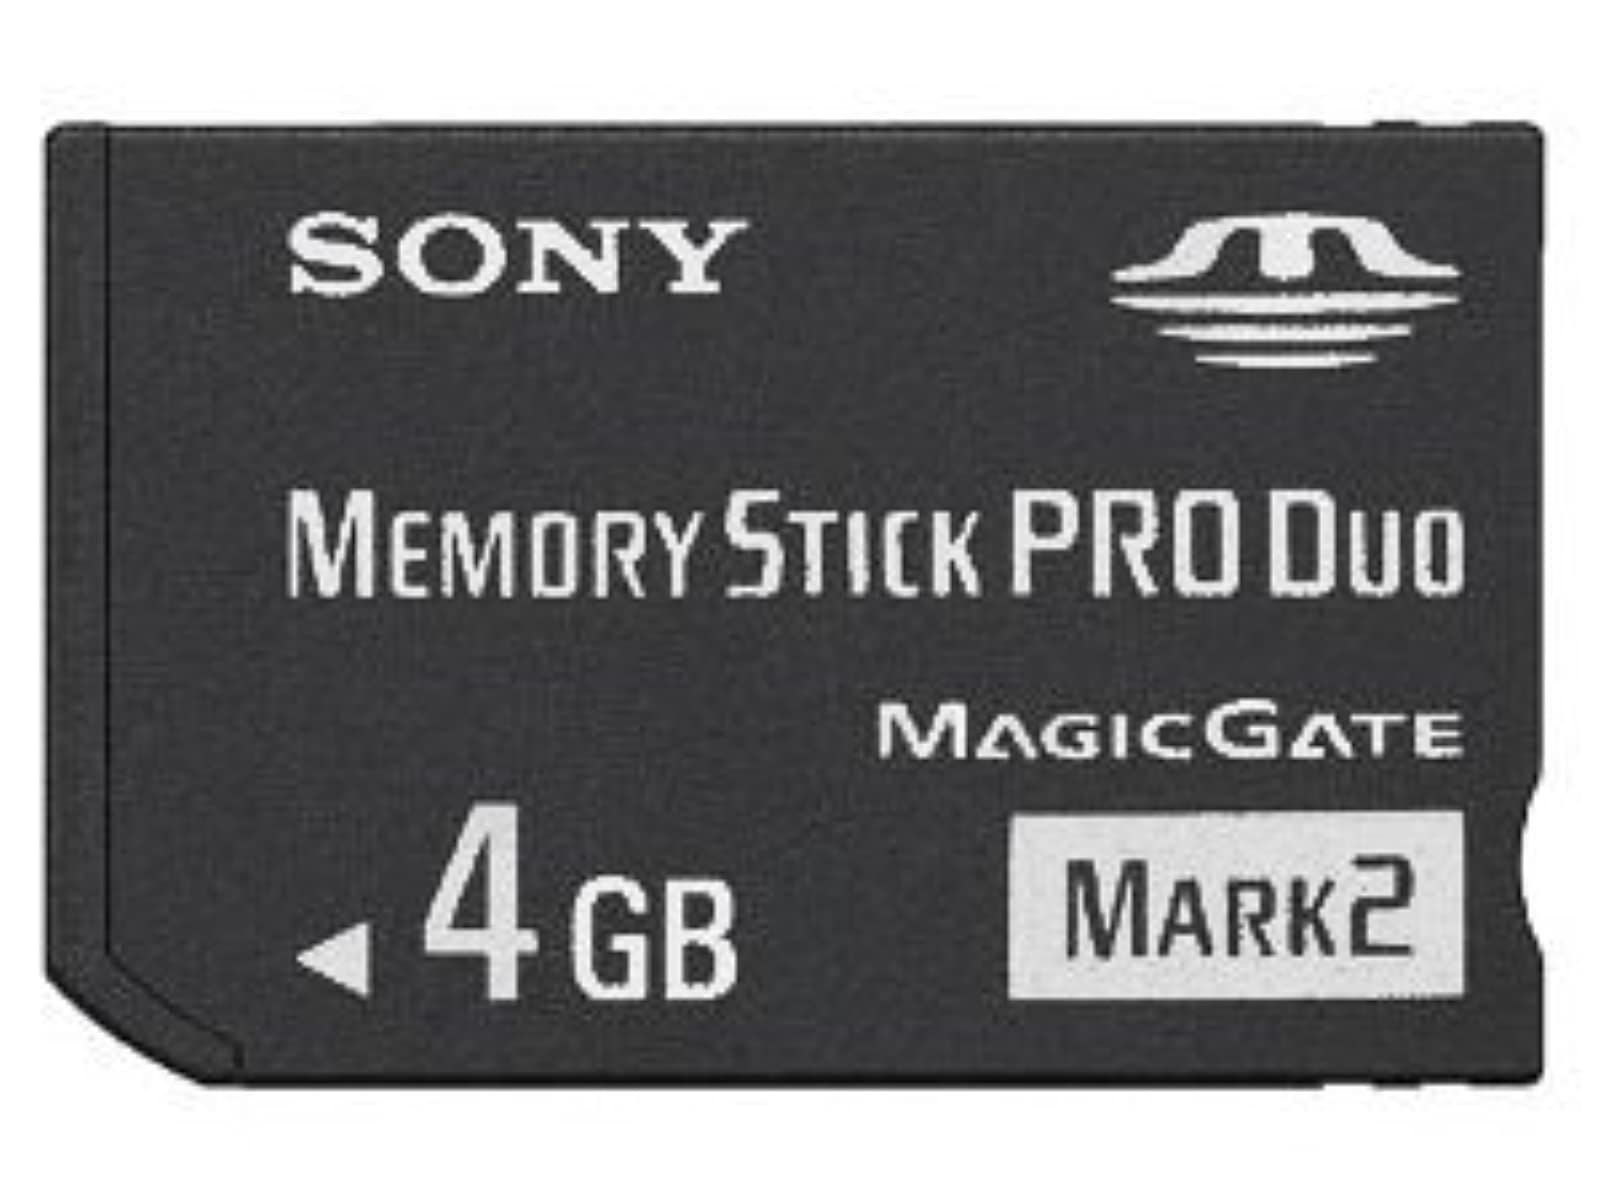 4 GB Sony Pro Duo Mark 2 Memory Stick For PSP